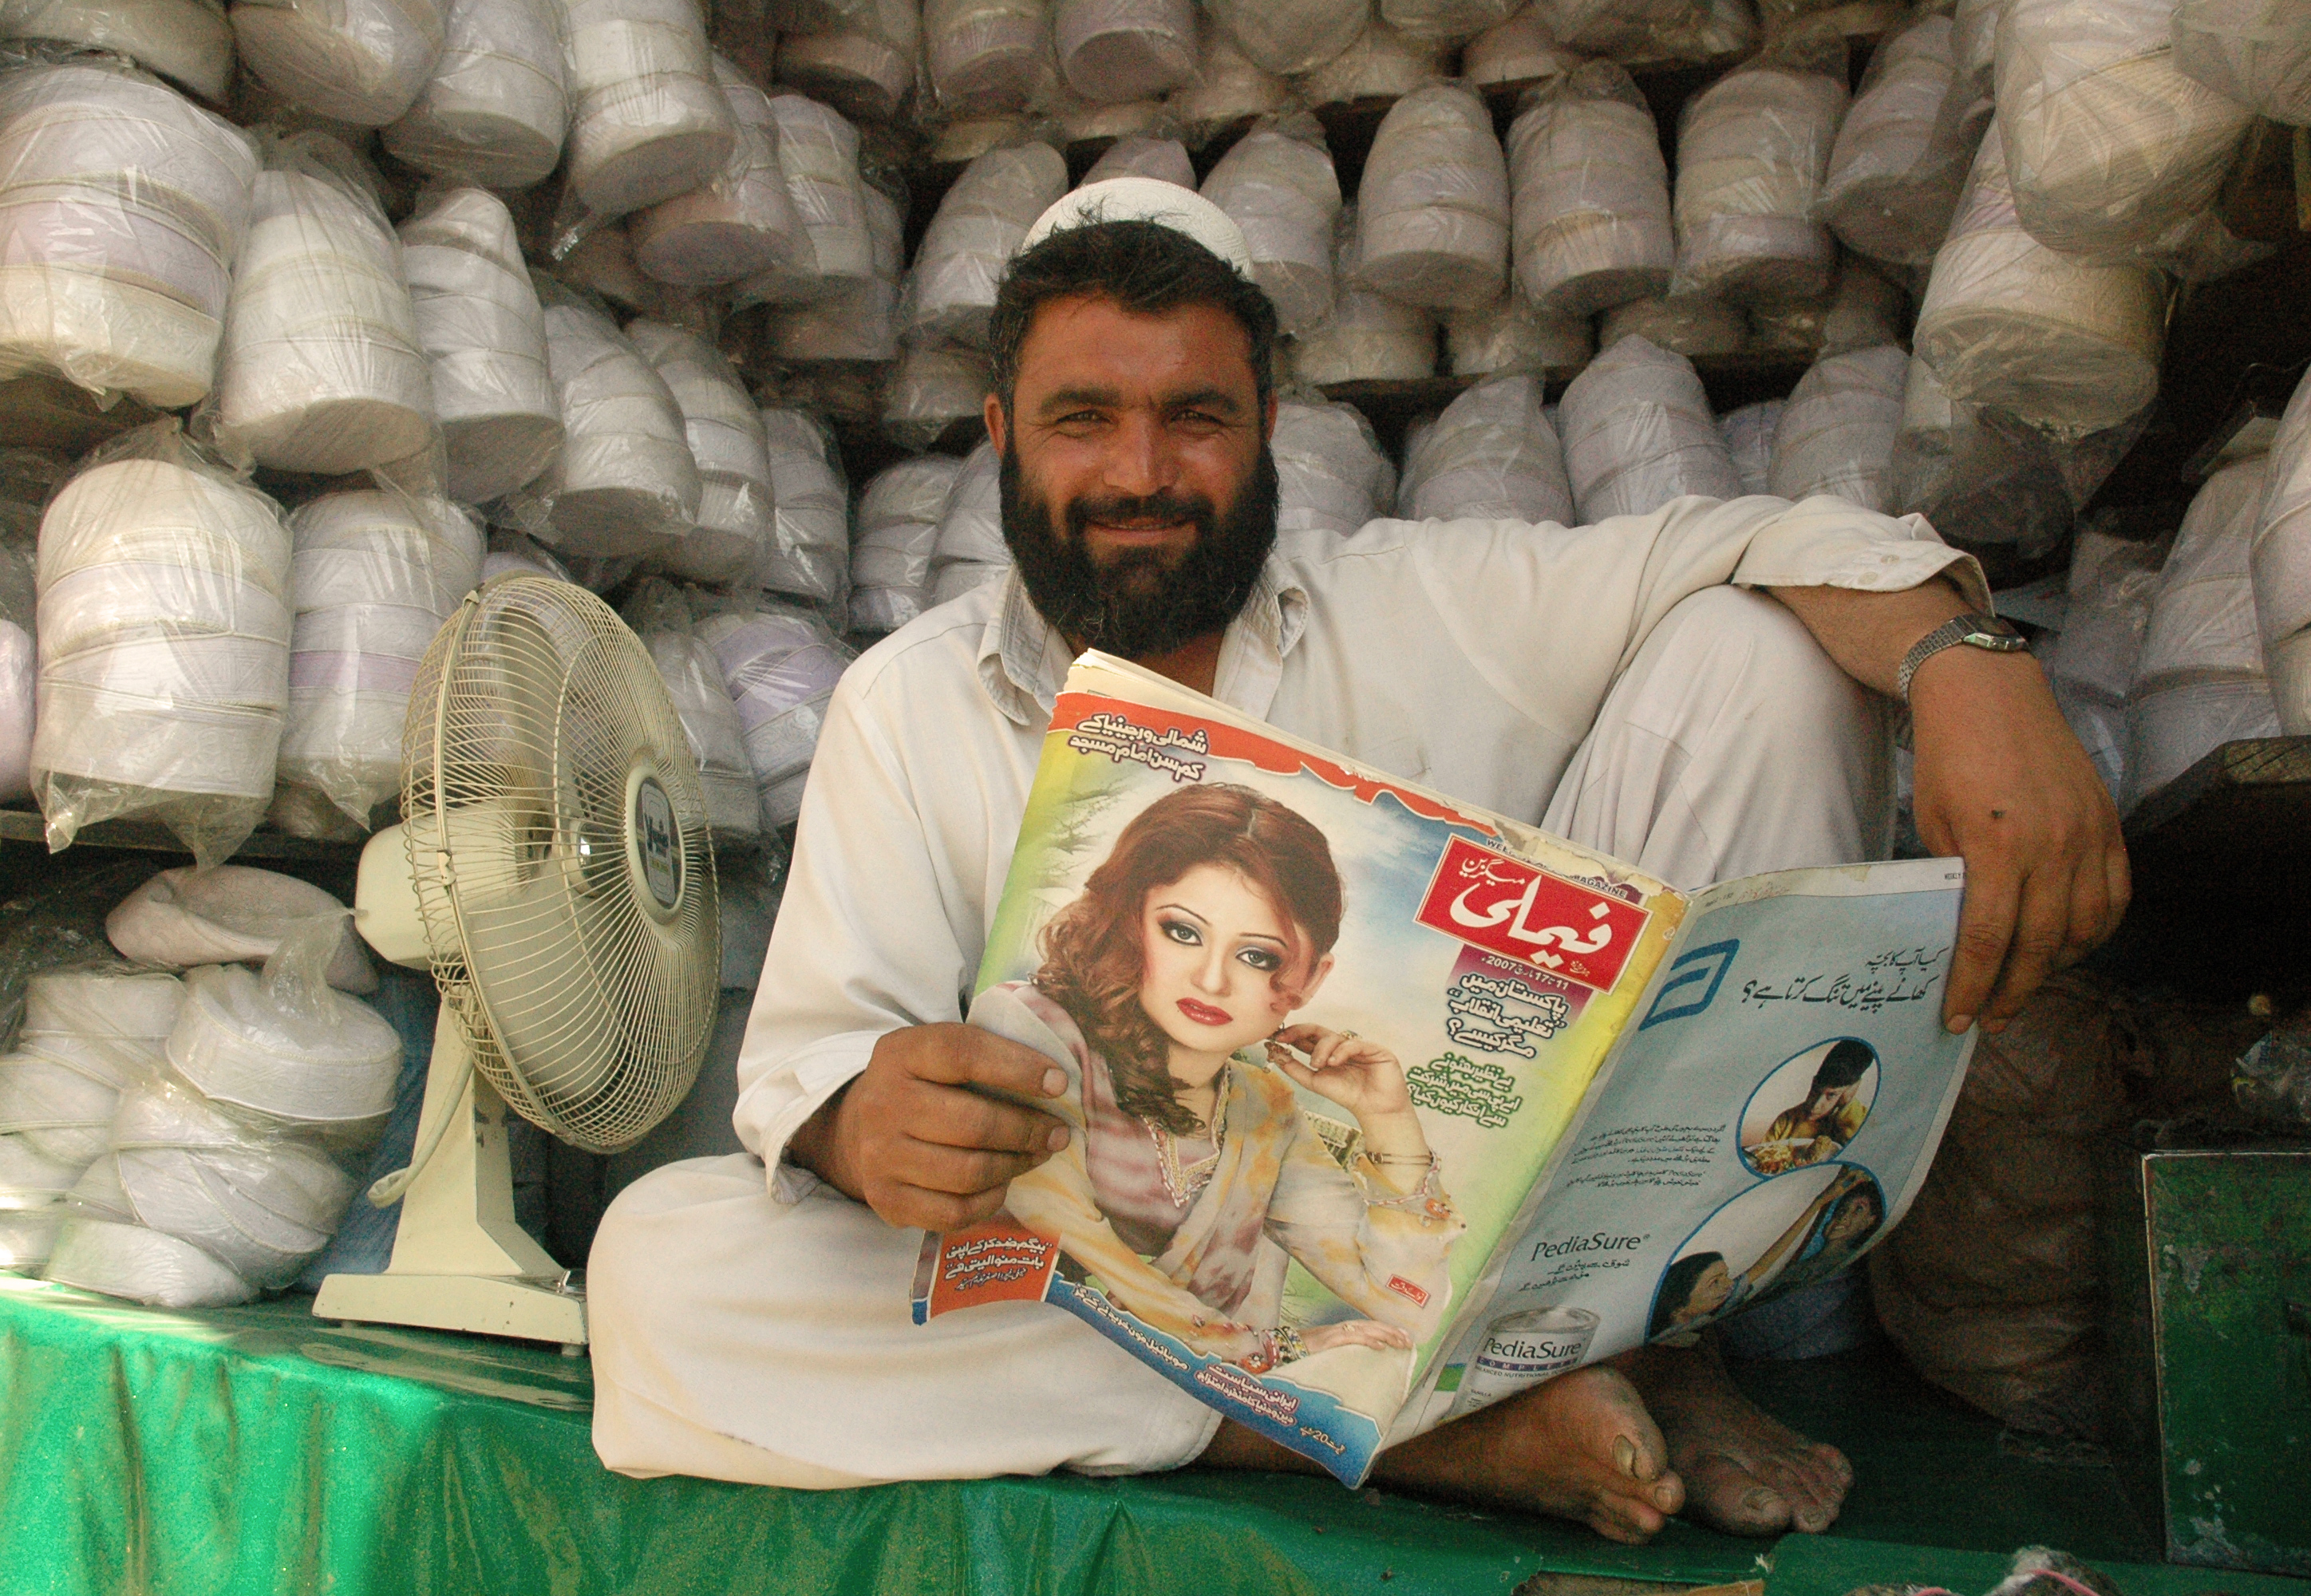 Local merchant, Pakistan